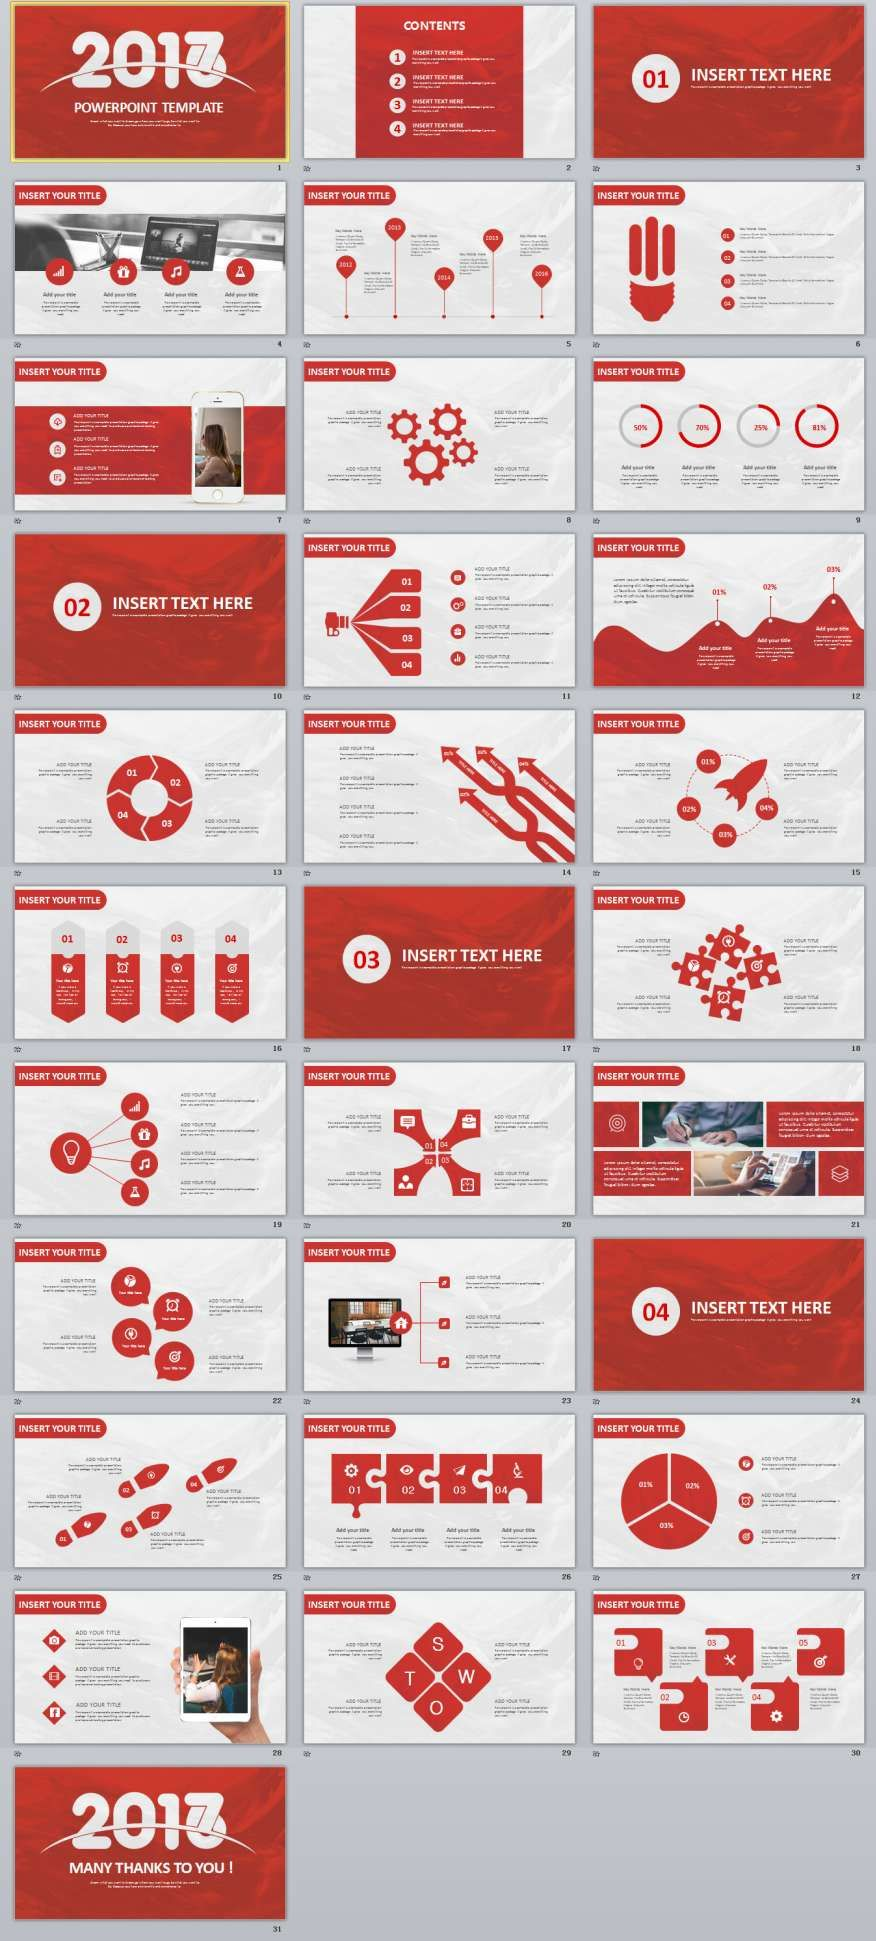 red black business design powerpoint templates | 2018 business, Powerpoint templates